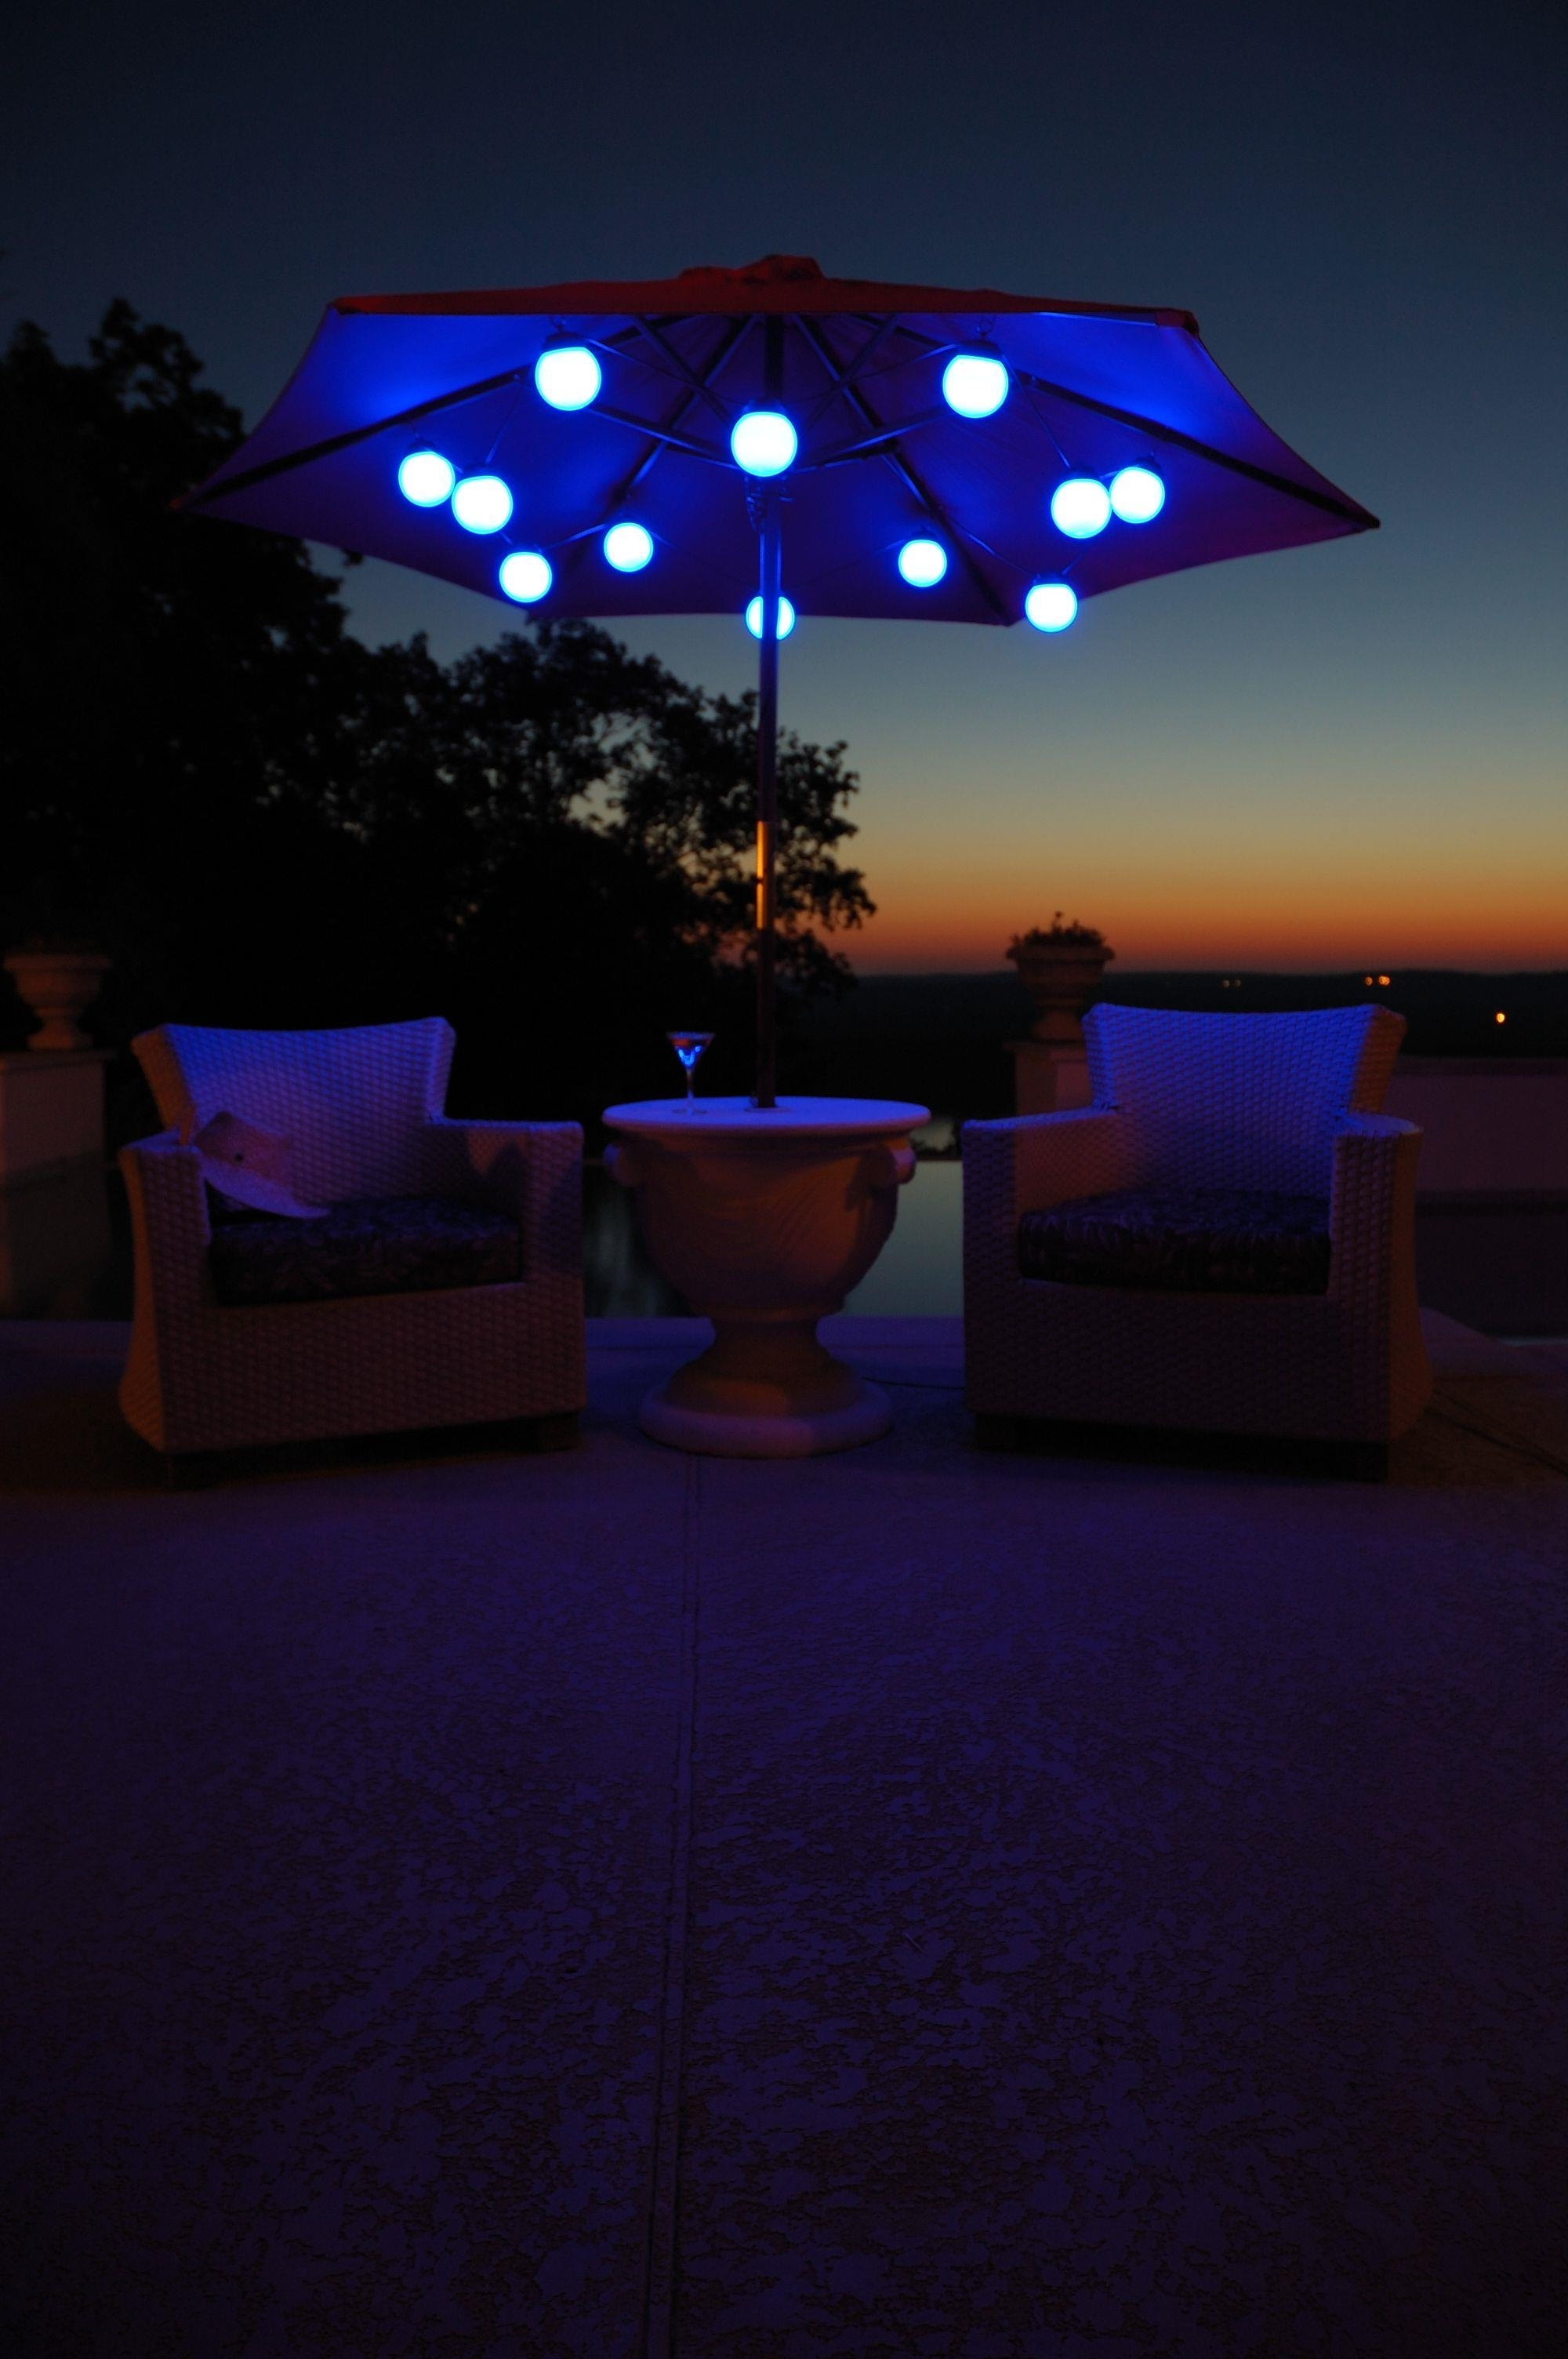 Popular Bar Furniture Patio Umbrella With Lights Led – Arelisapril With Patio Umbrellas With Led Lights (View 16 of 20)